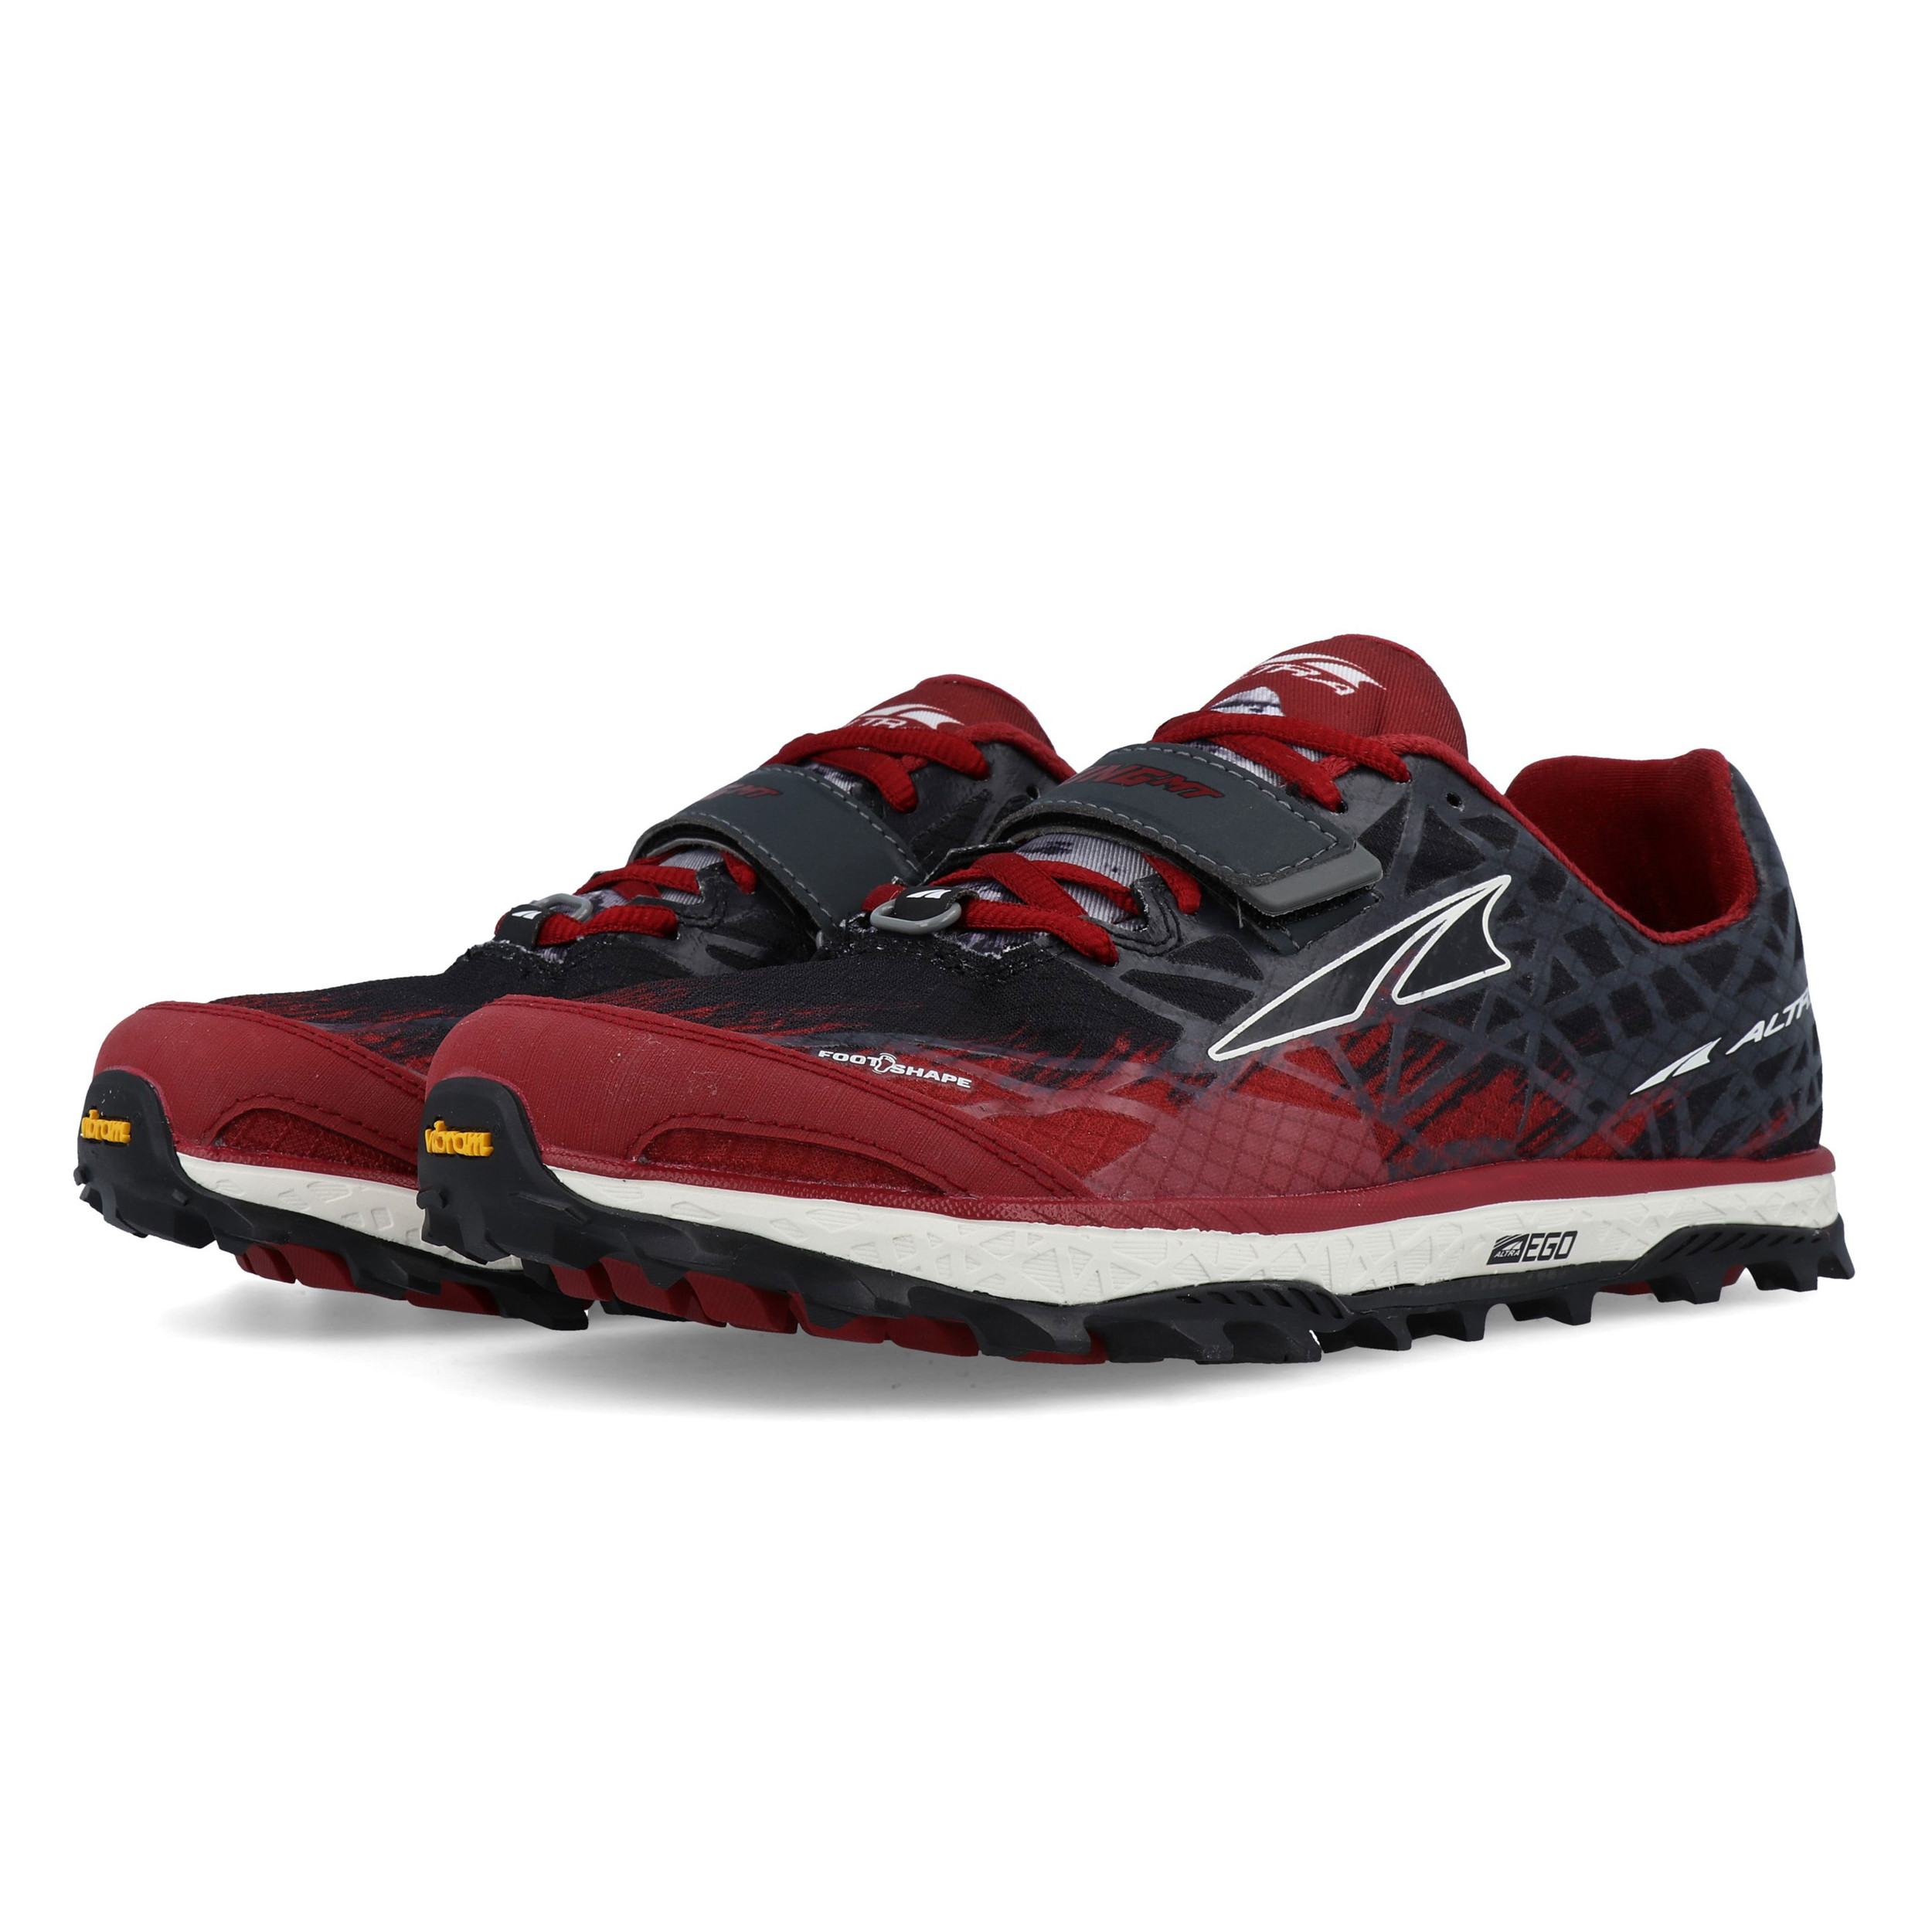 Altra King MT 1.5 Trail Running Shoes